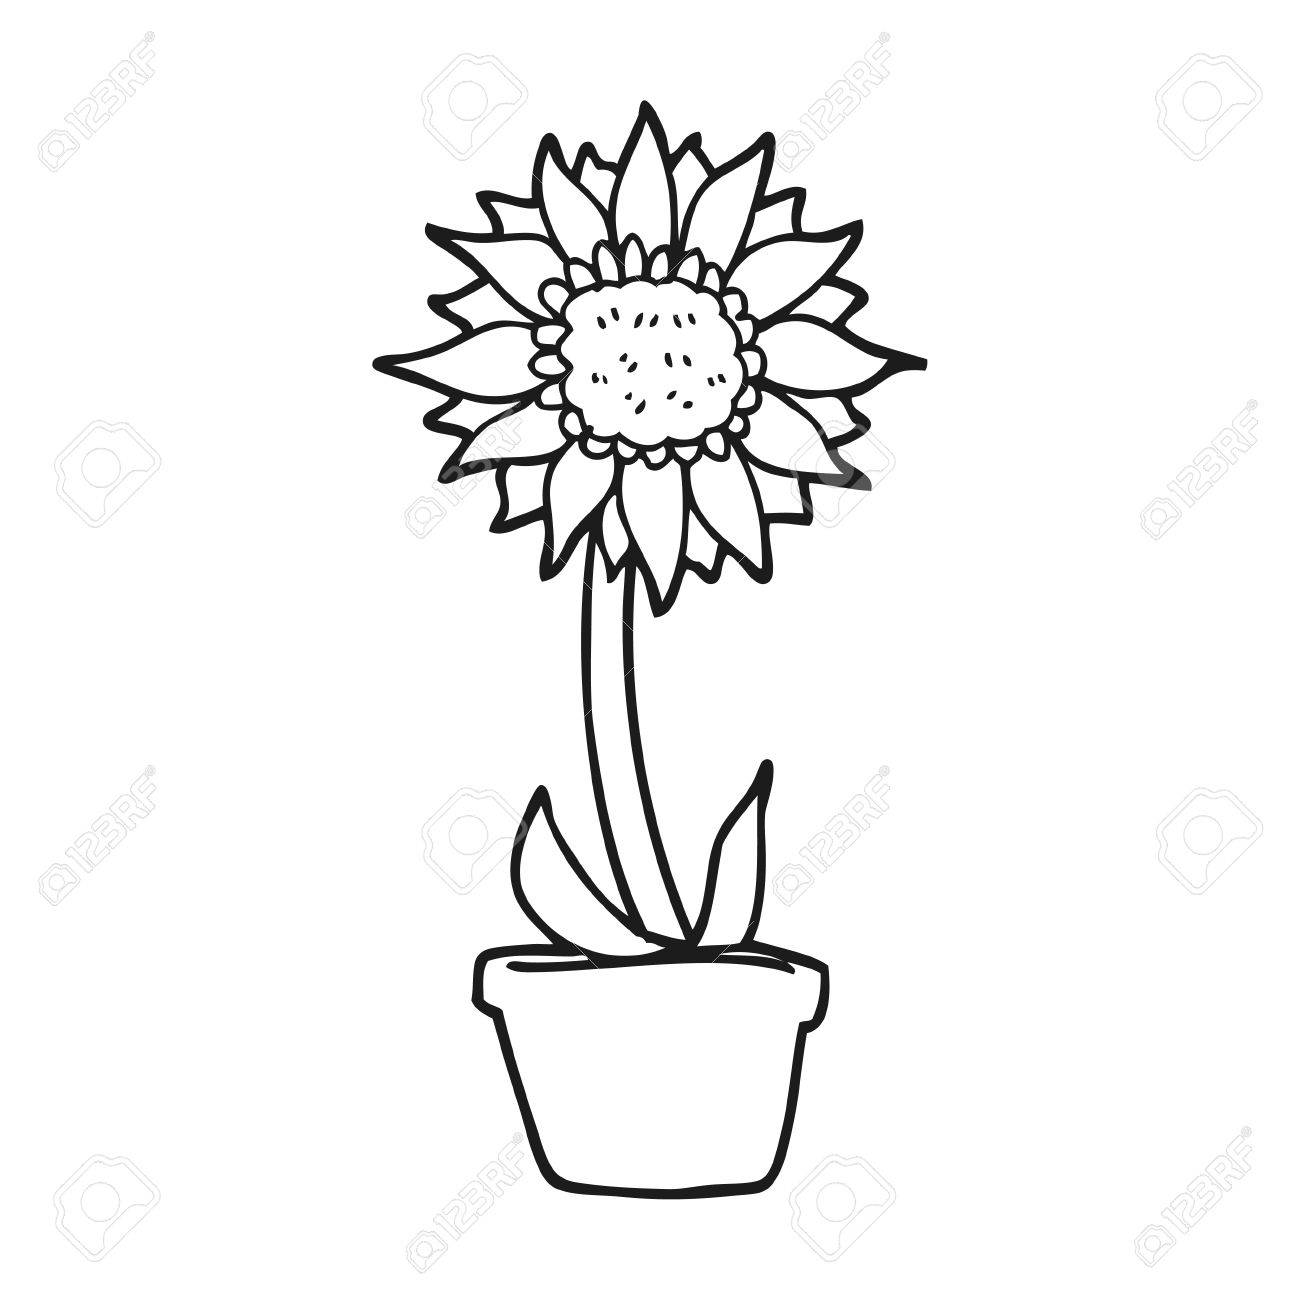 clip art transparent library Line drawing free download. Sprout clipart sunflower stem